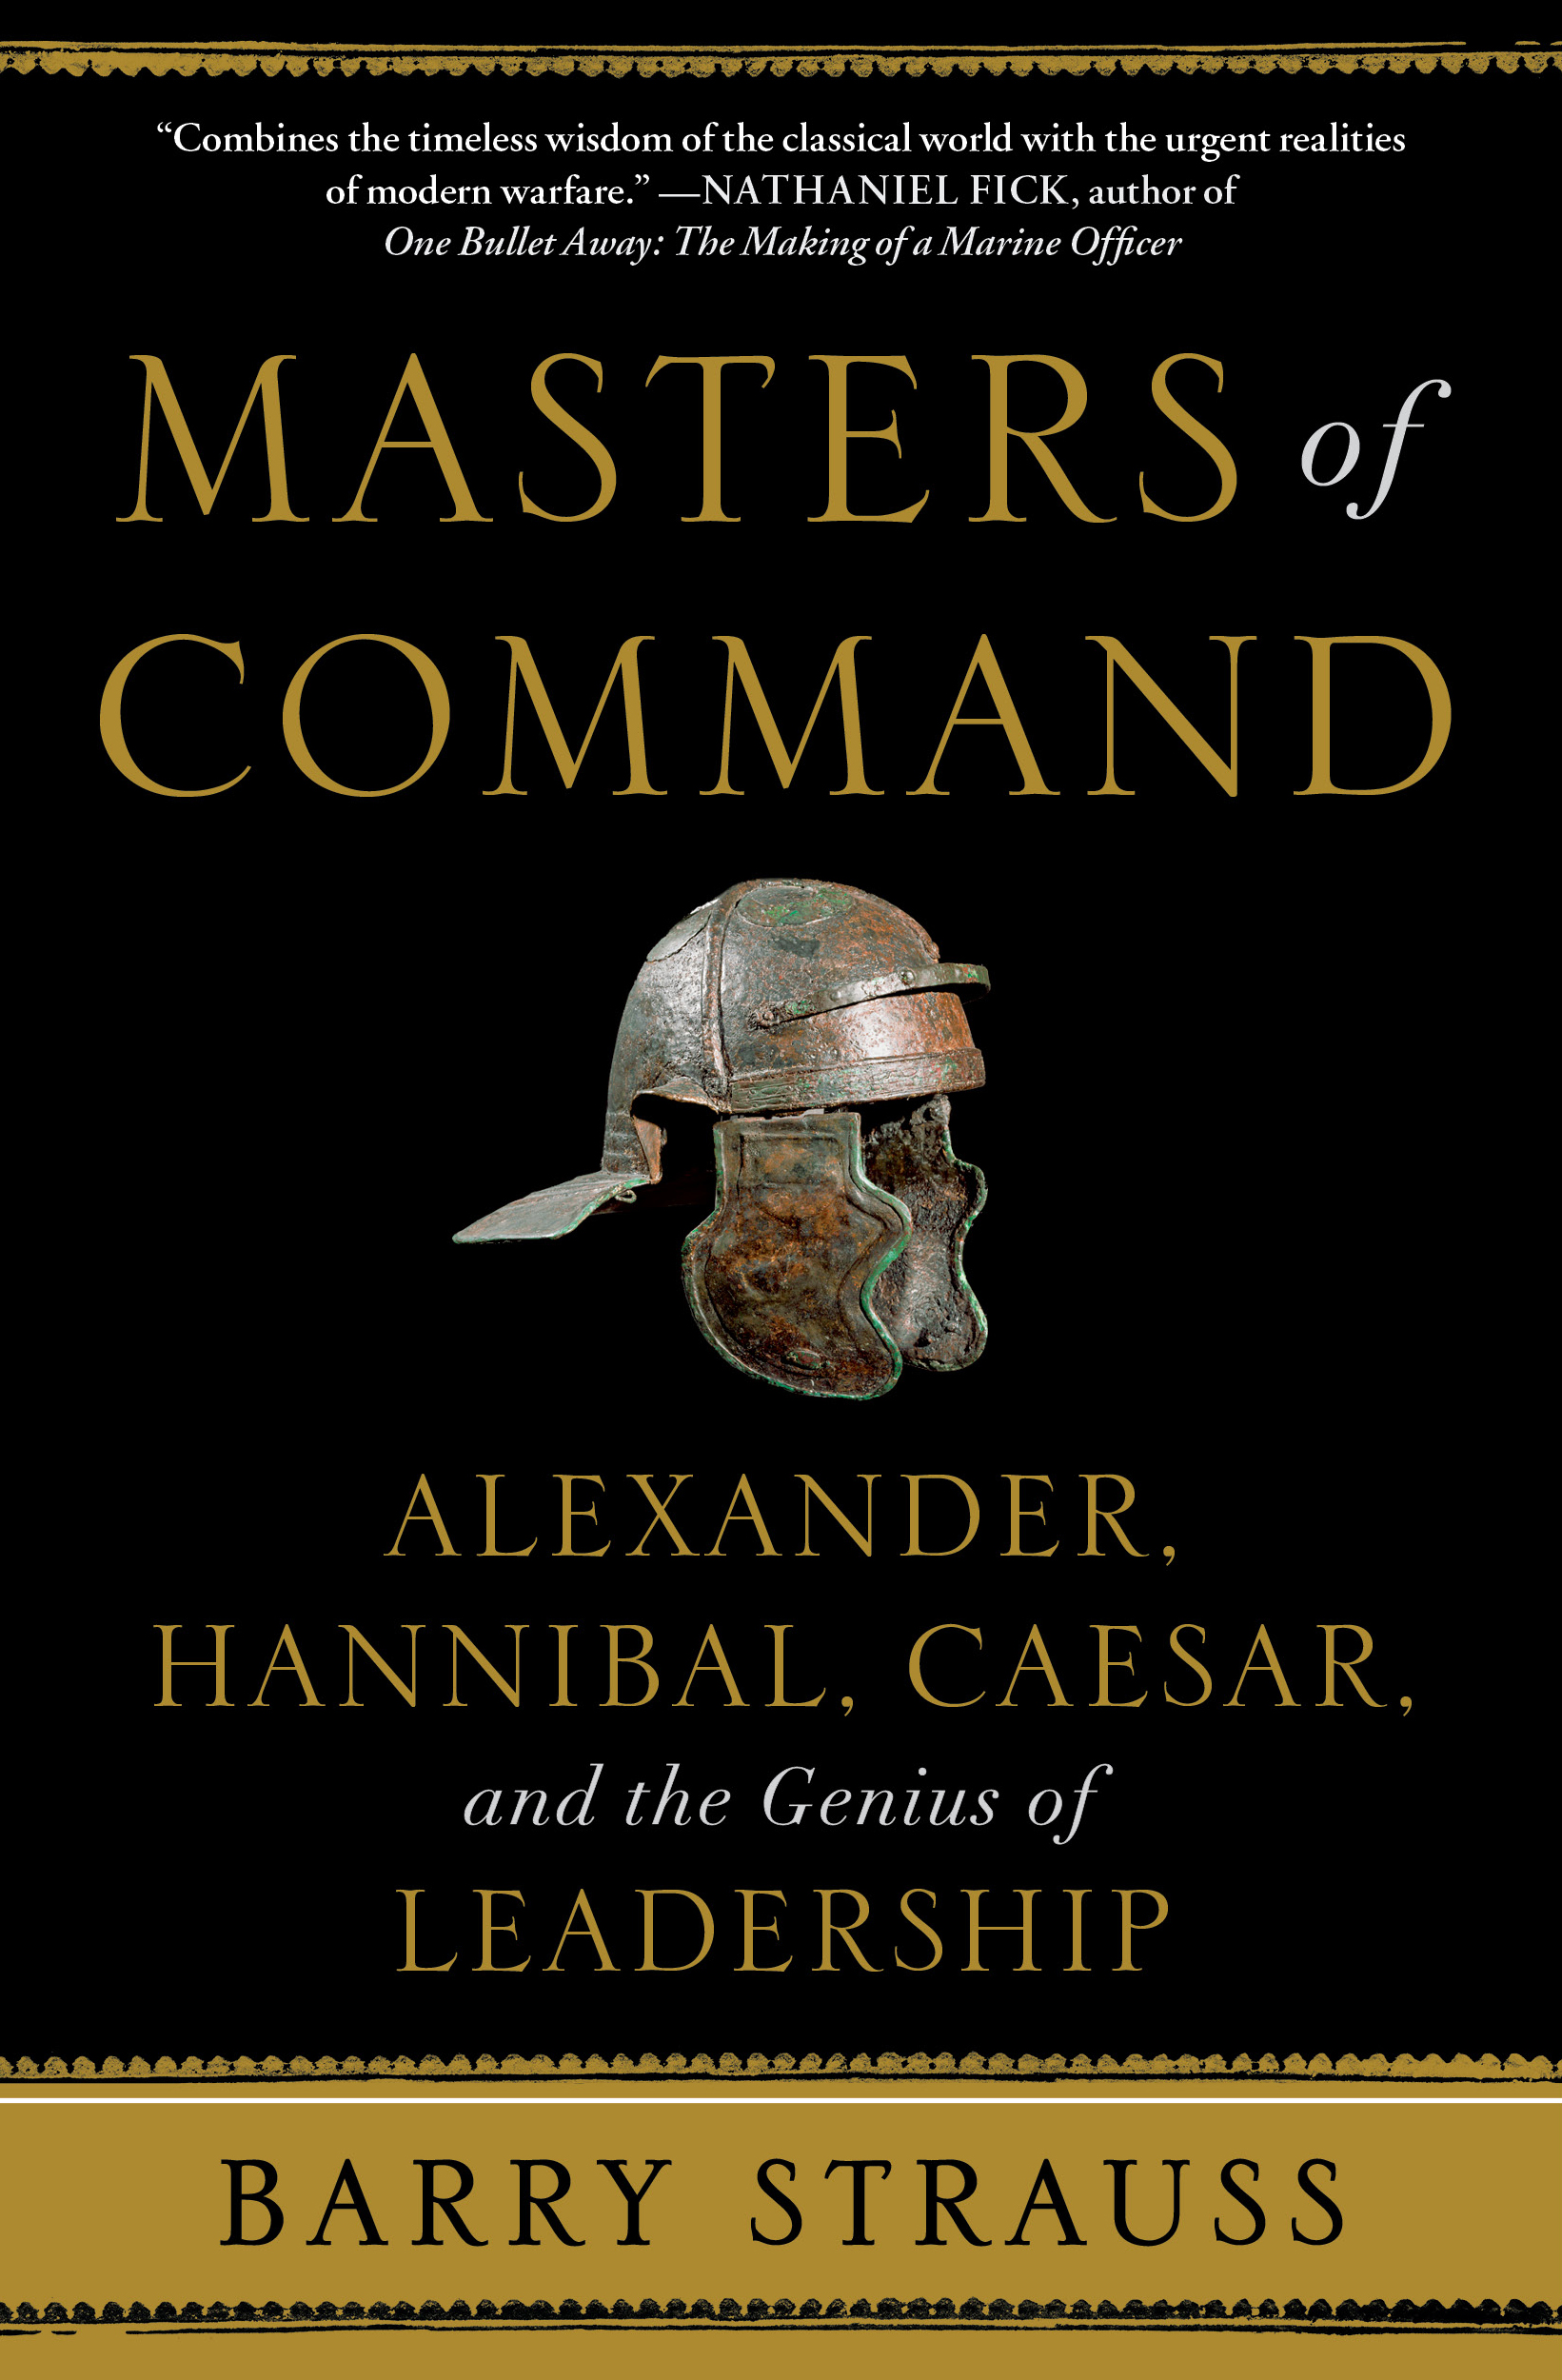 Masters-of-command-9781439164495_hr